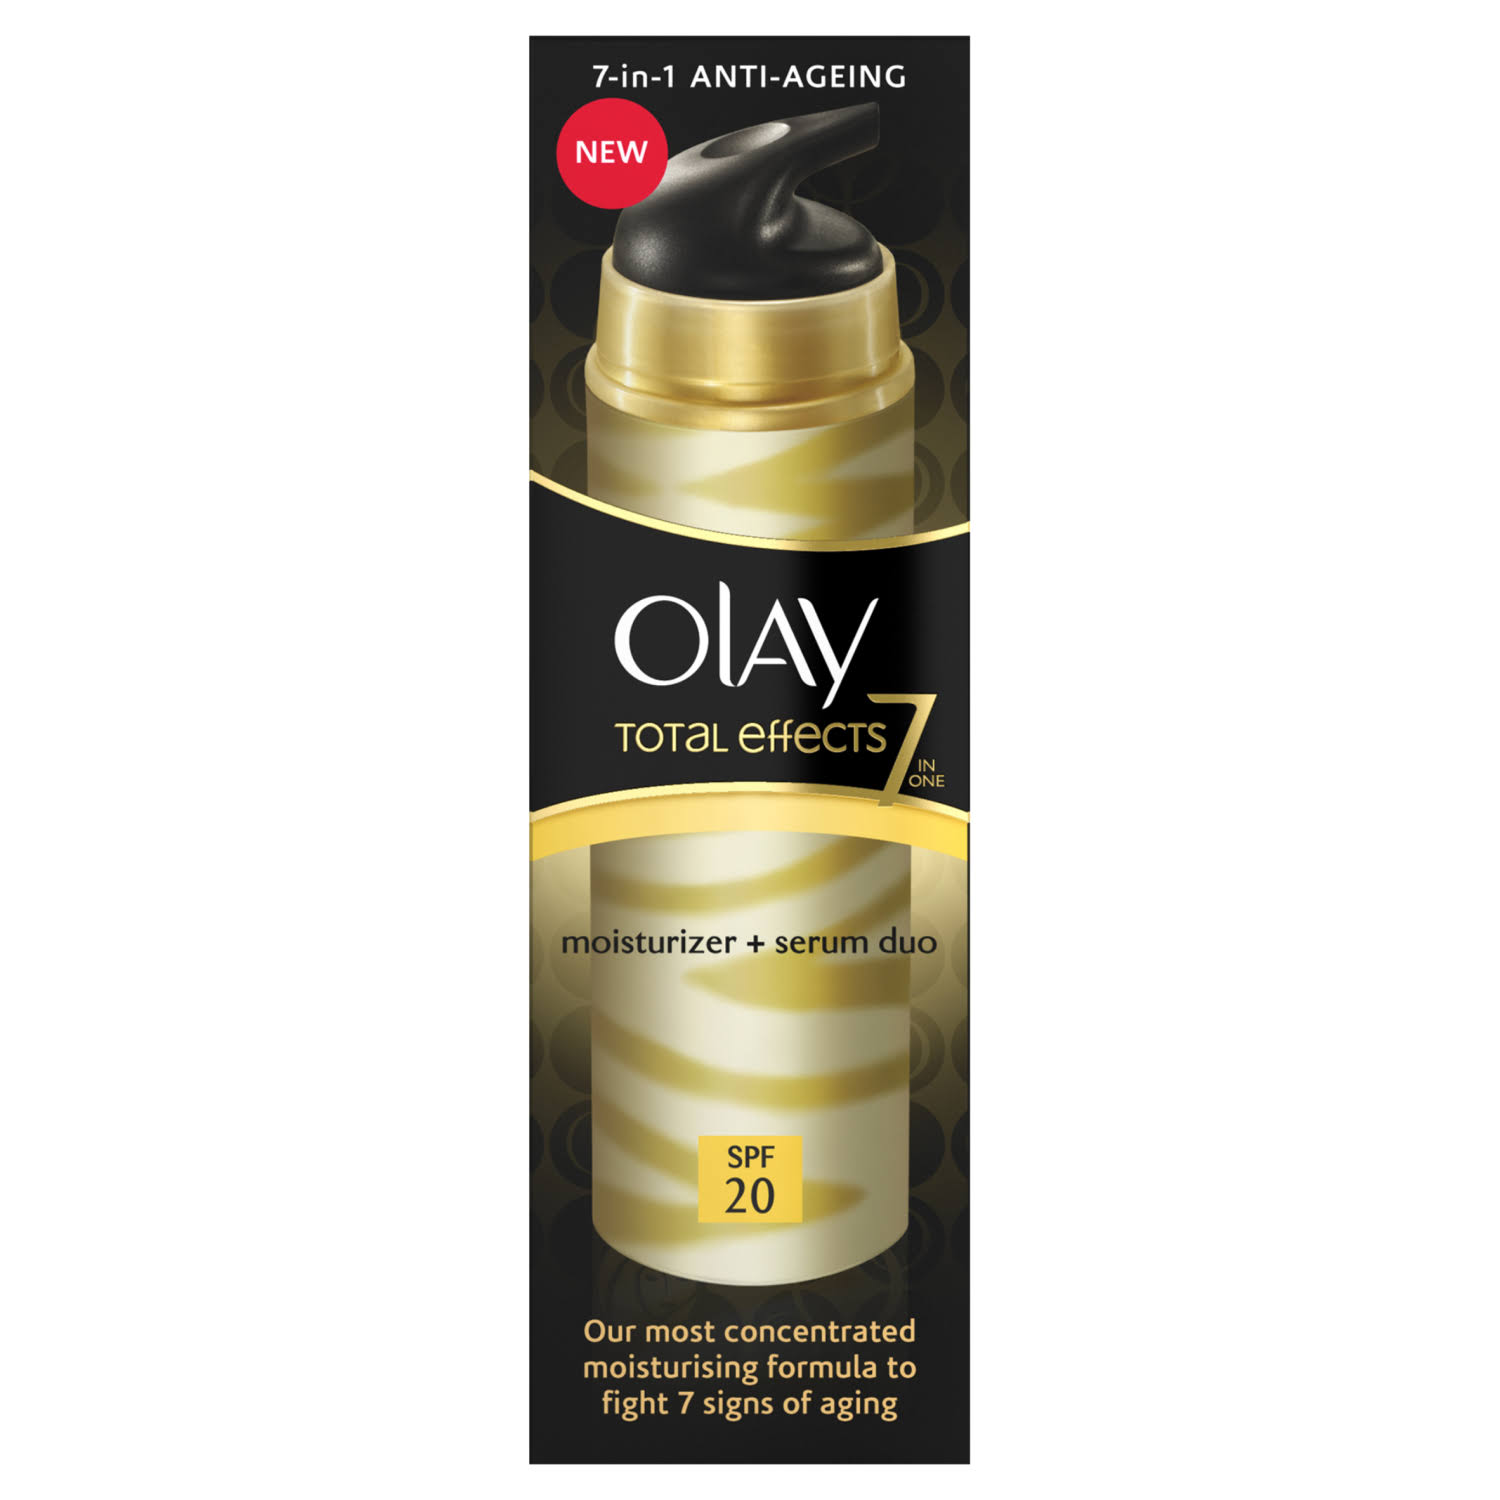 Olay Total Effects Anti-Ageing SPF 20 Moisturiser And Serum Duo - 40ml